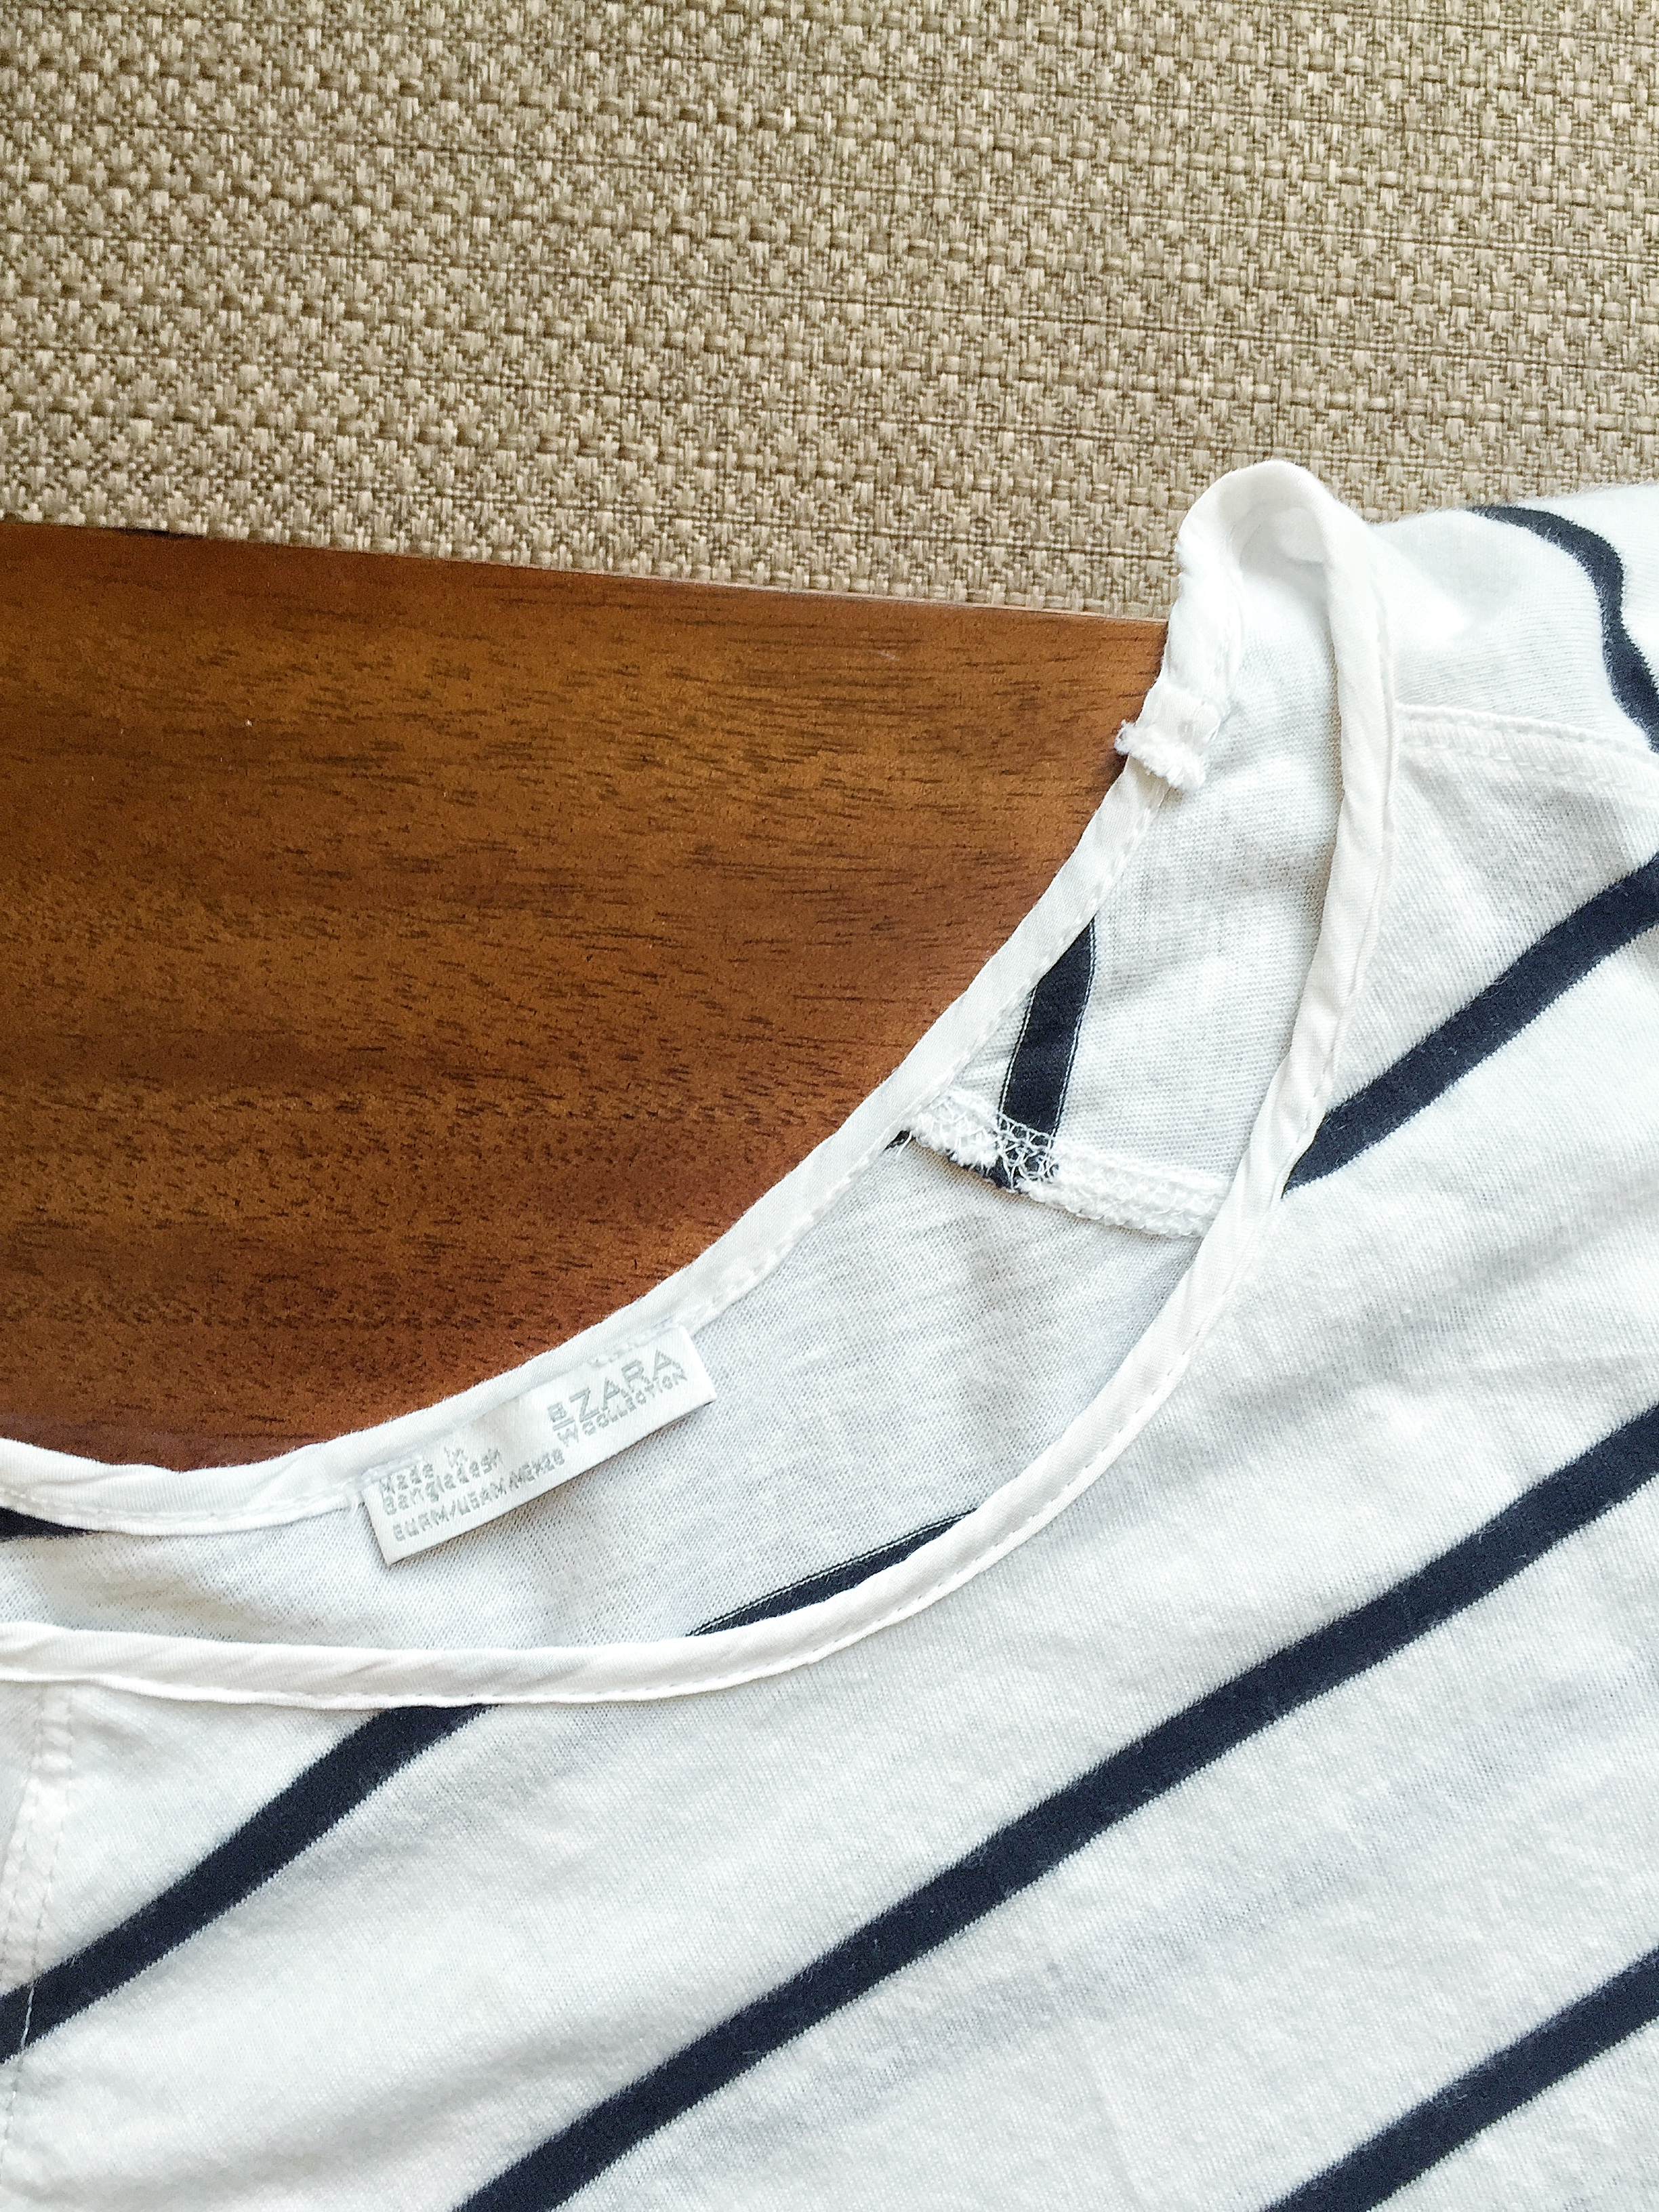 I bought this shirt at Zara before I knew about fast fashion. And it's made in Bangladesh! Oh no...